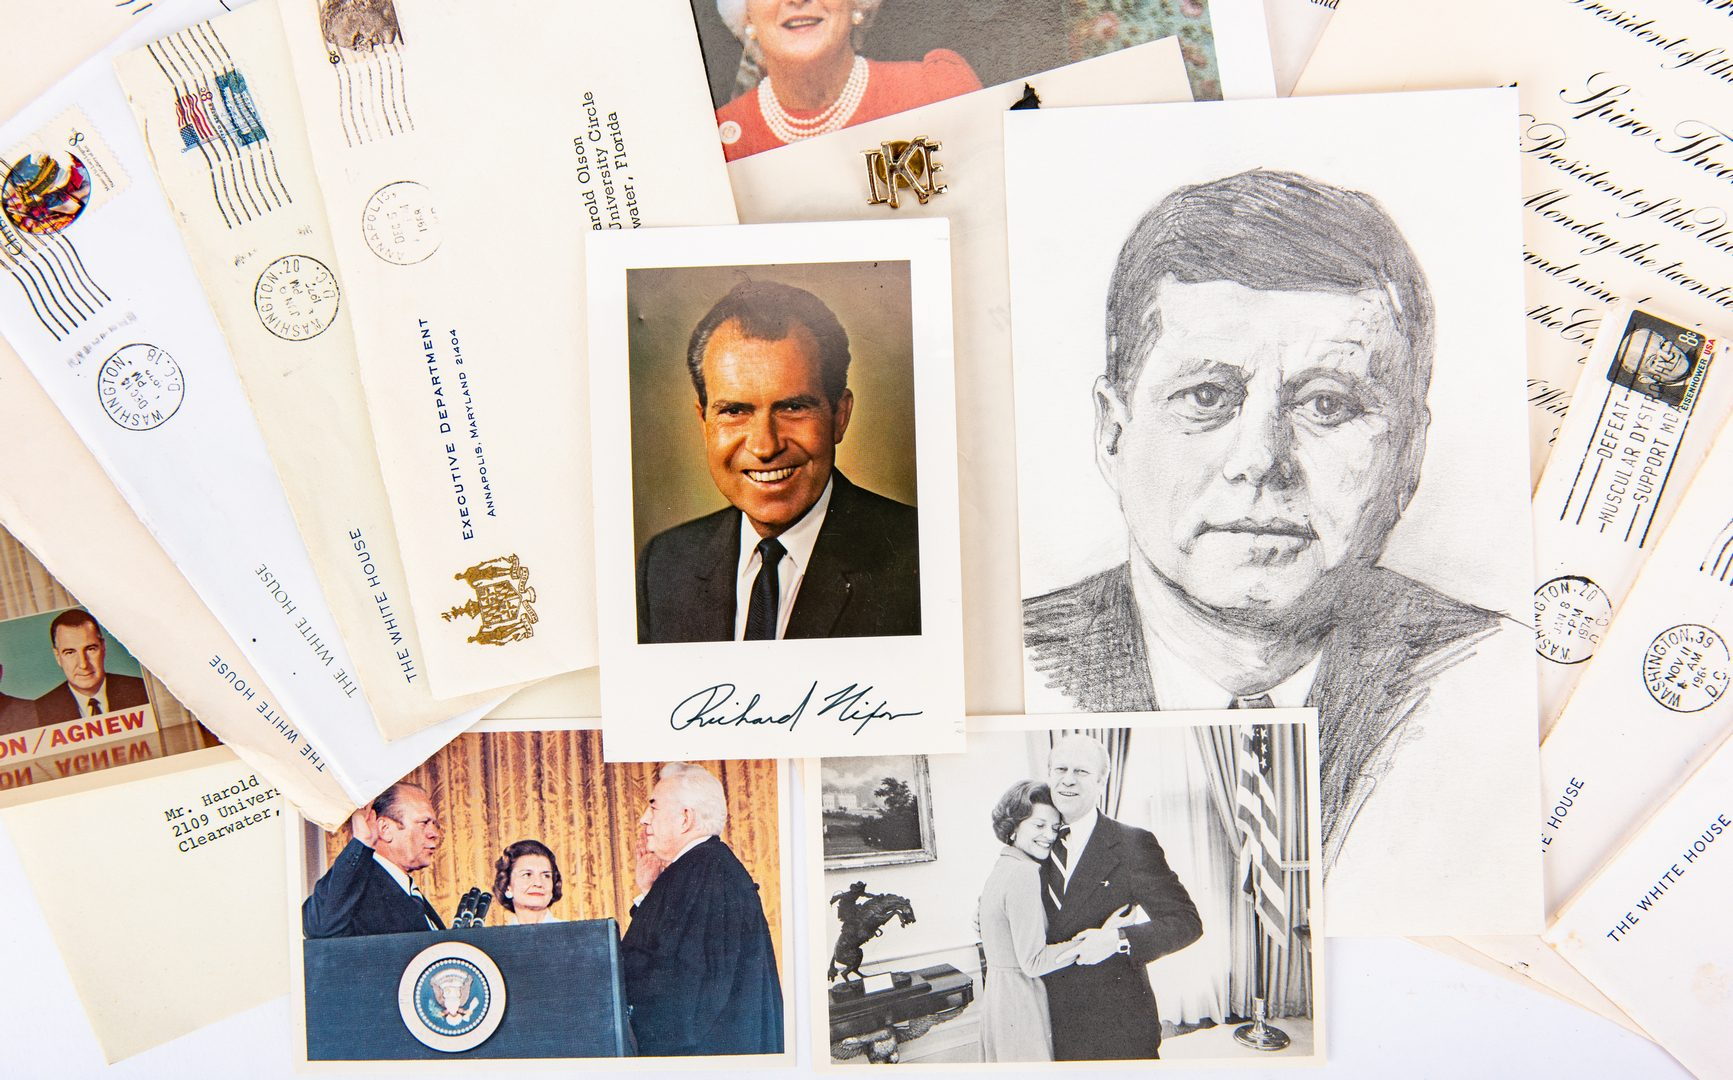 Lot 266: 20th Cent. Political Figures Archive, inc. Nixon, J.E. Hoover, 28 items